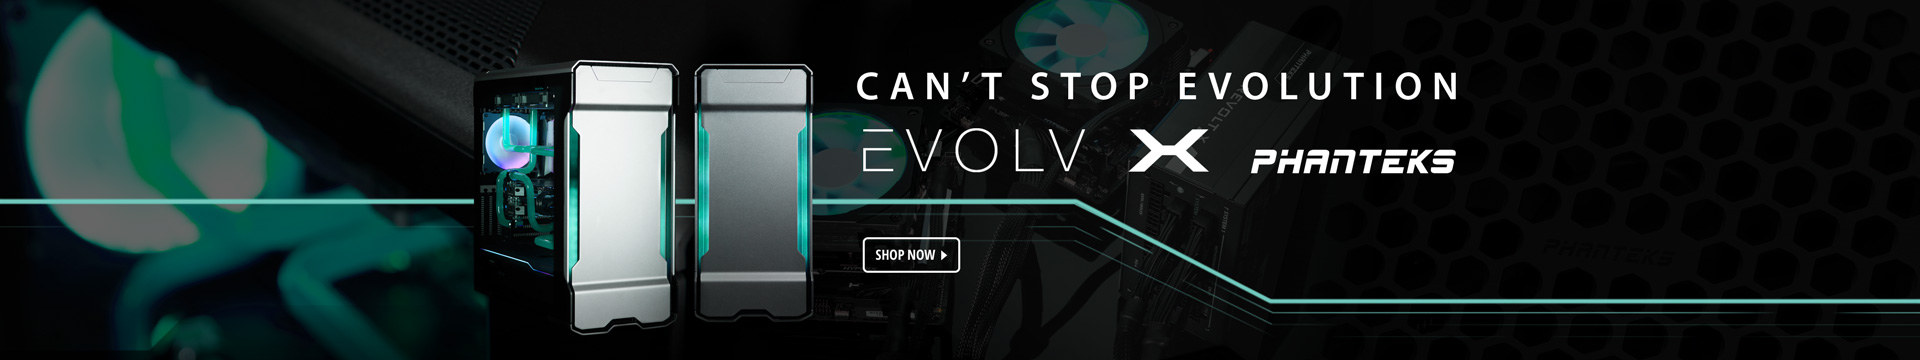 CAN'T STOP EVOLUTION